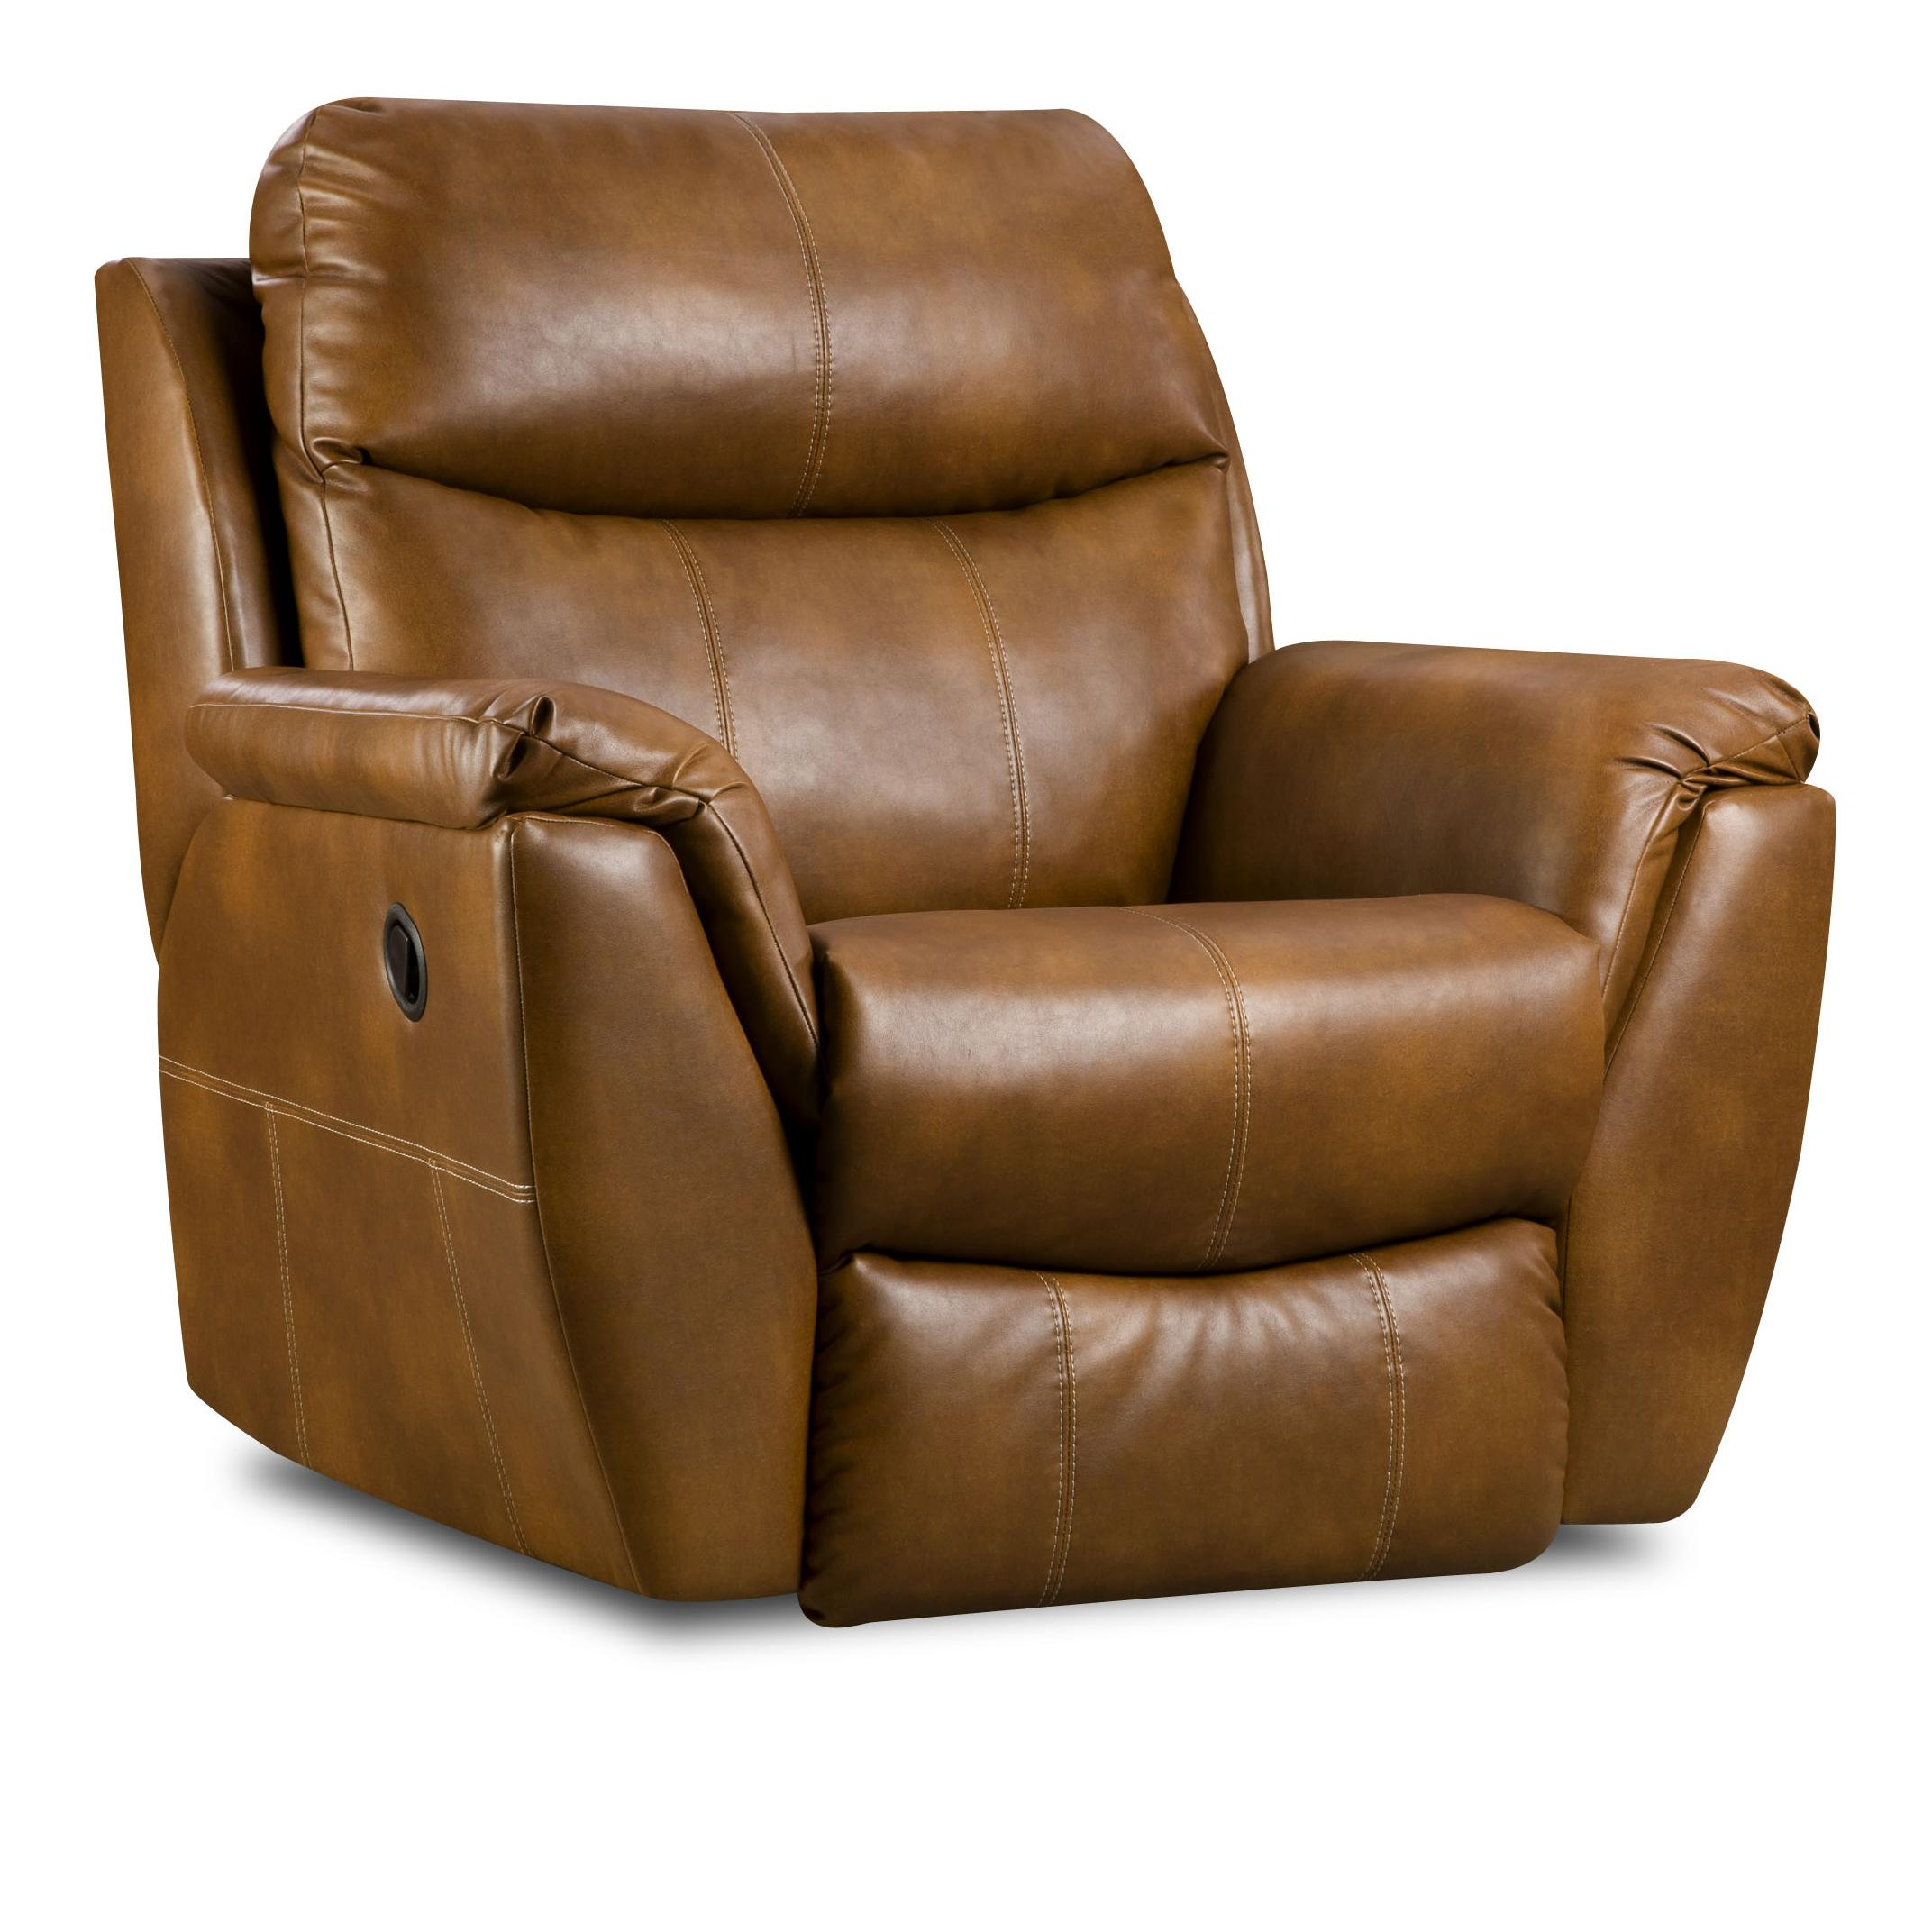 Southern Motion Monaco Wall Hugger Recliner - Item Number: 2564